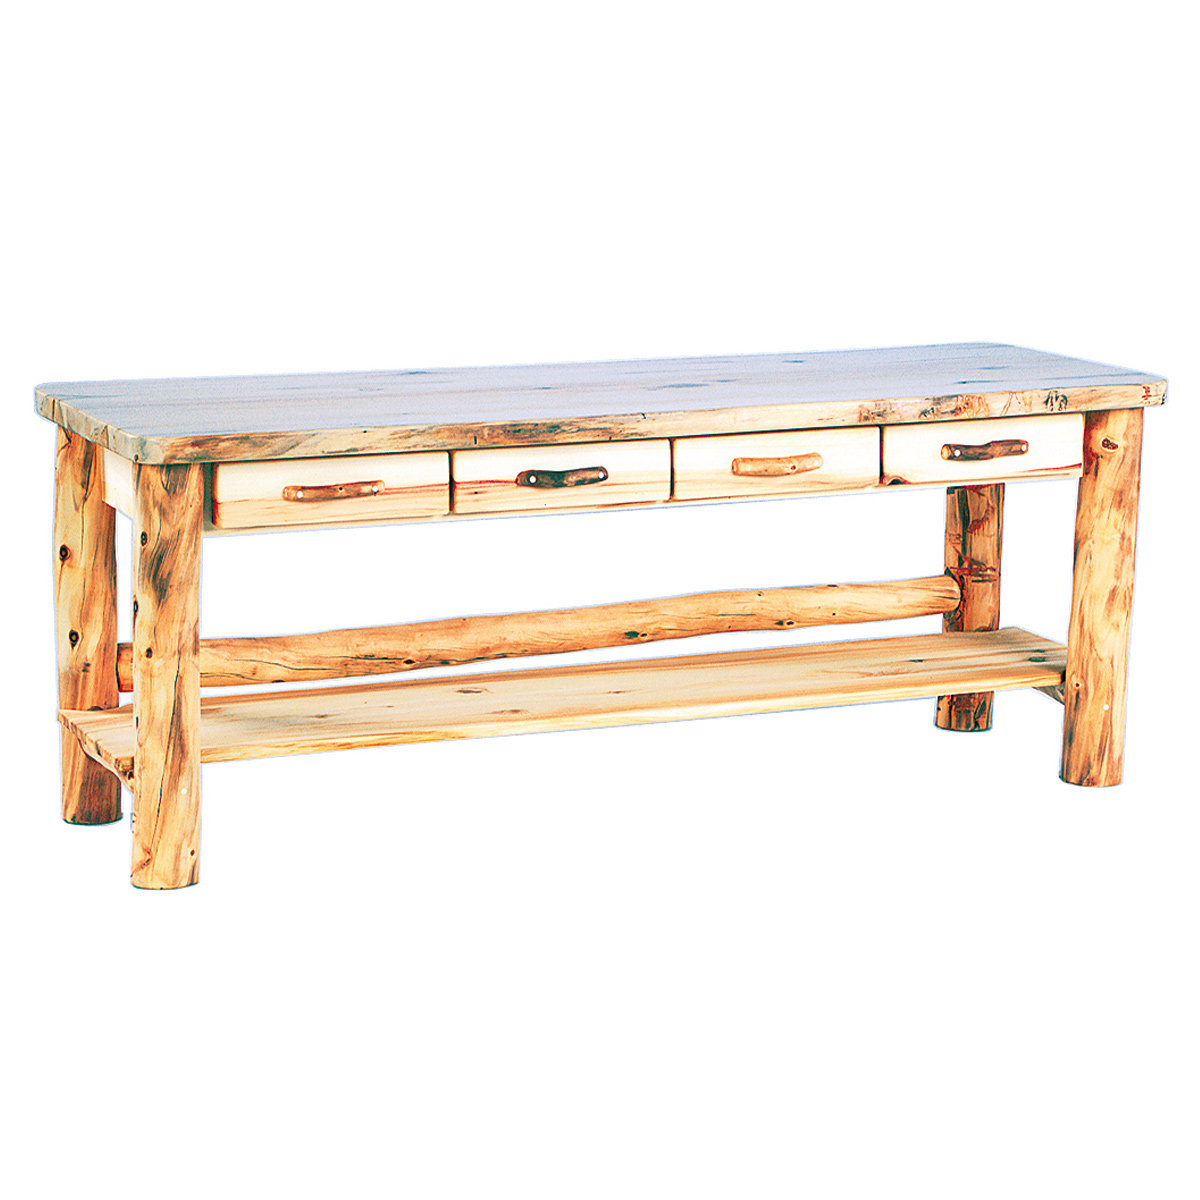 Heirloom Sofa Table with Drawers - 6 Foot